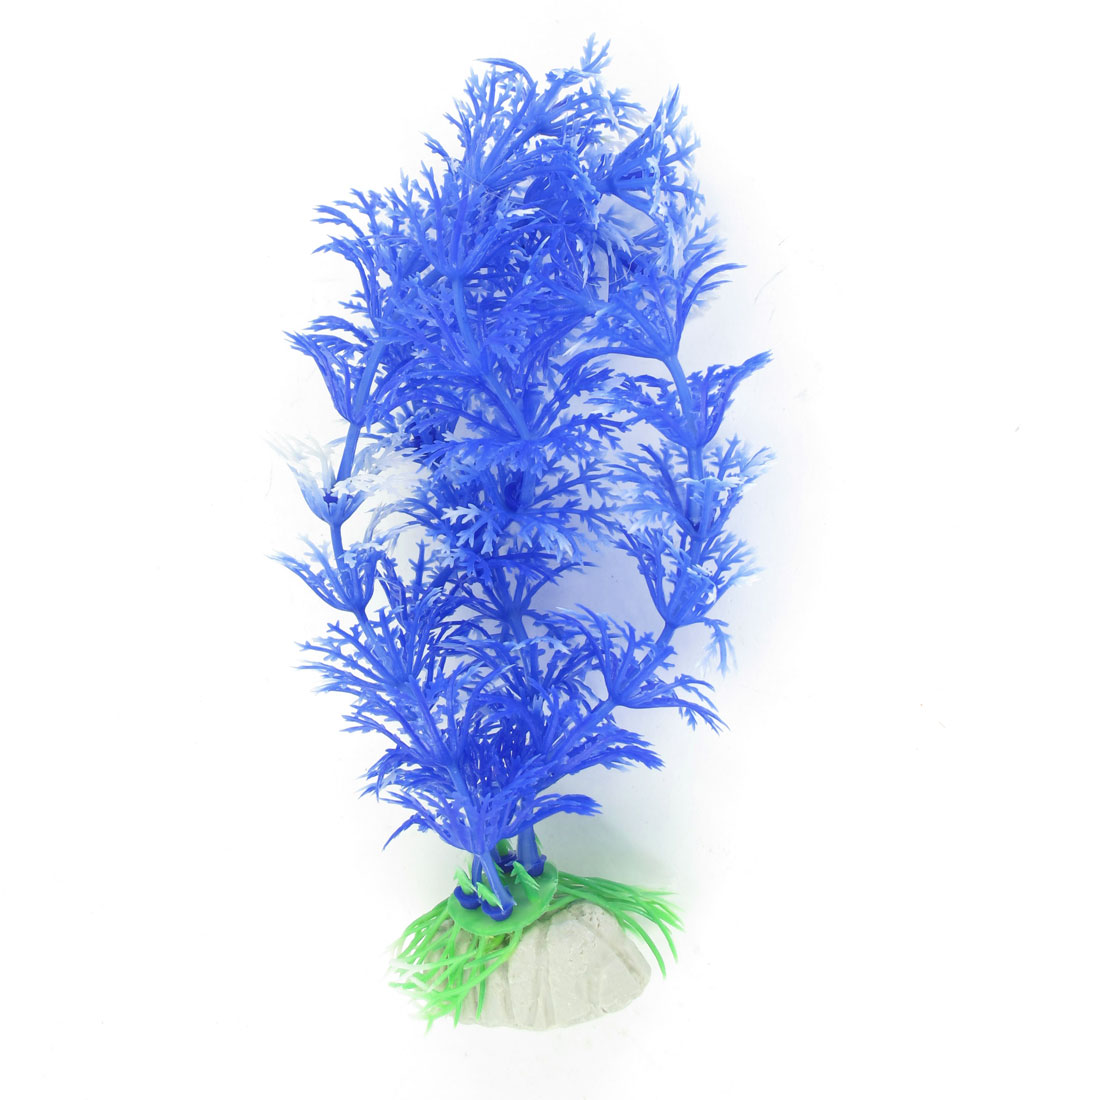 "5.5"" High Light Blue Simulation Aquatic Aquarium Plant Ornament"